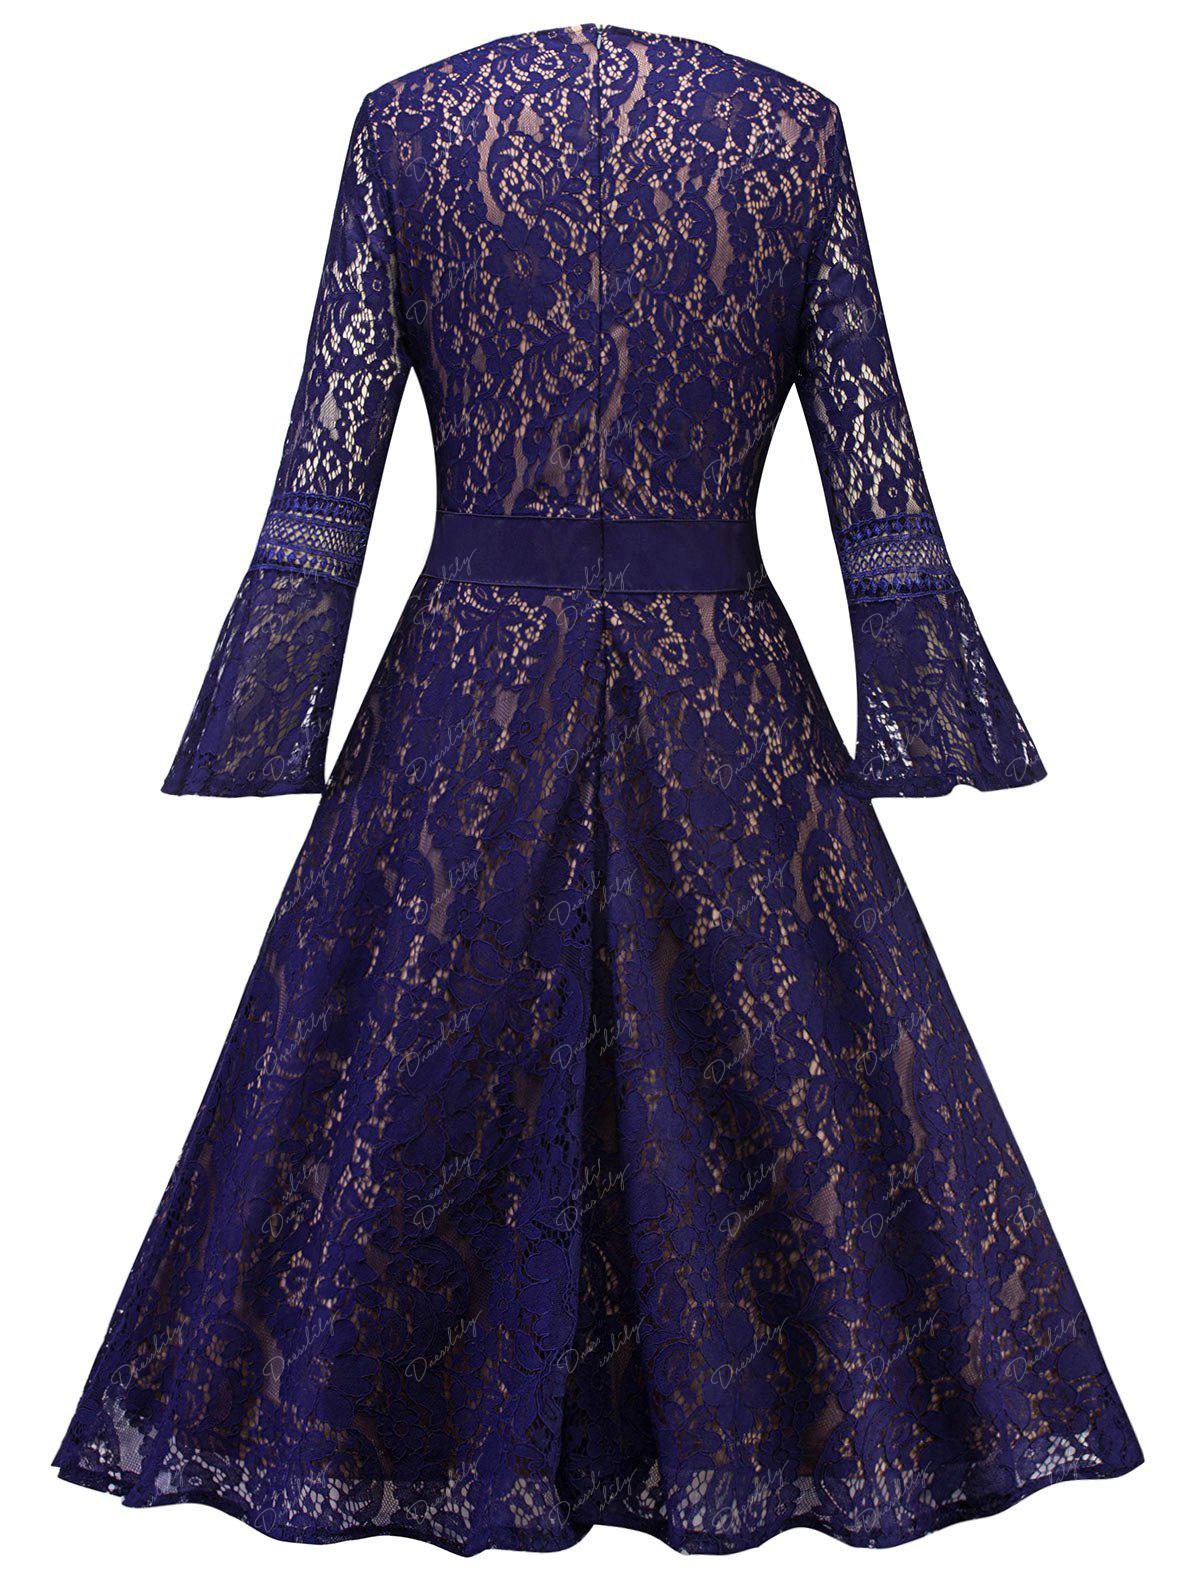 Bell Sleeve Fit and Flare Lace Dress - PURPLE L